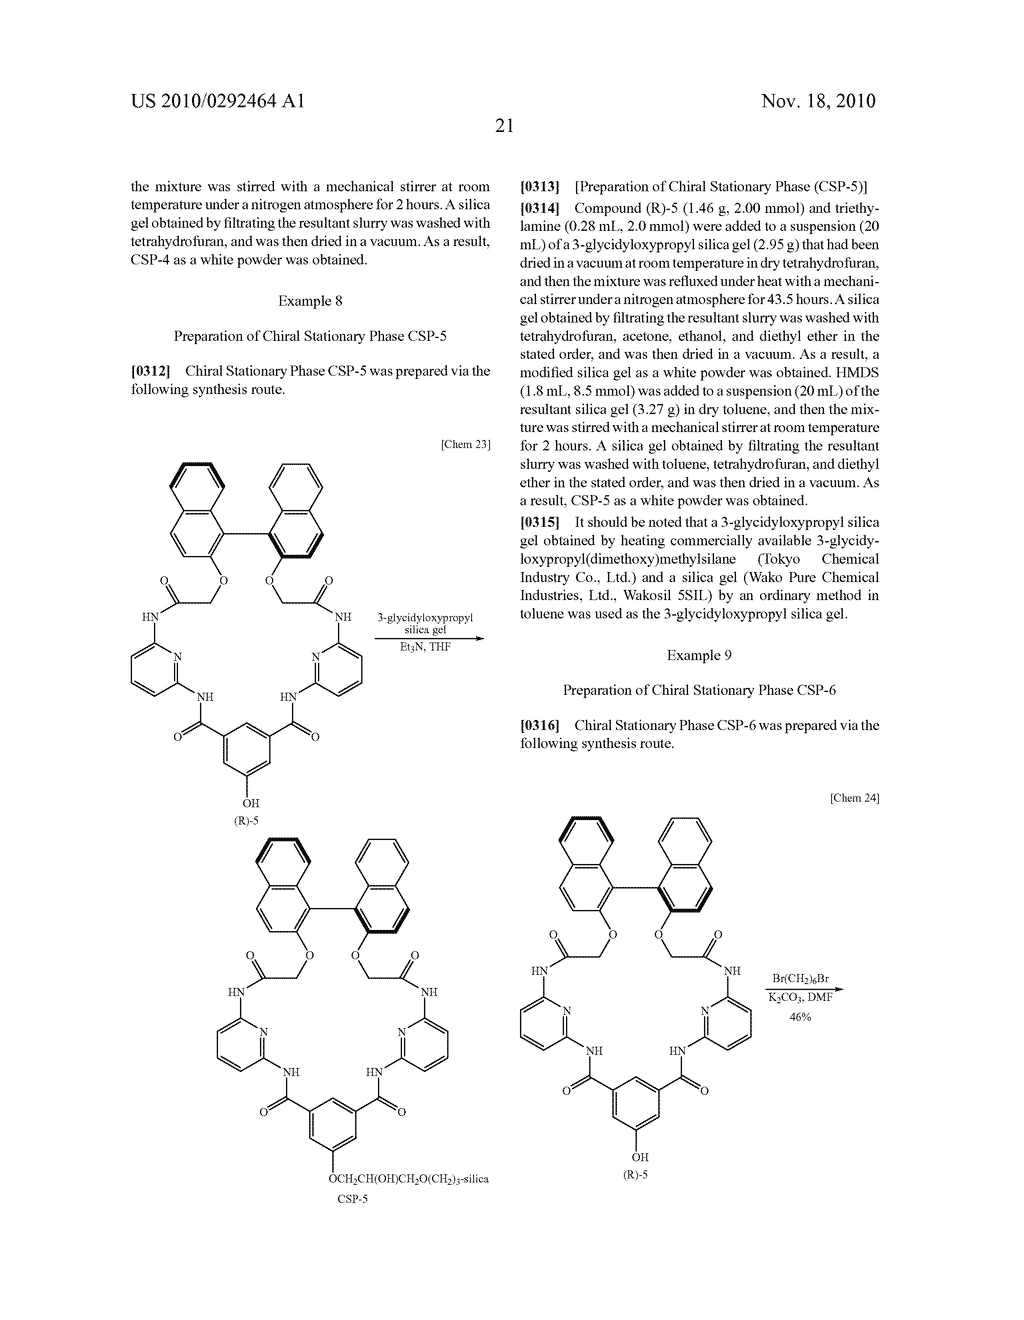 OPTICAL-ISOMER SEPARATING AGENT FOR CHROMATOGRAPHY AND PROCESS FOR PRODUCING THE SAME - diagram, schematic, and image 65